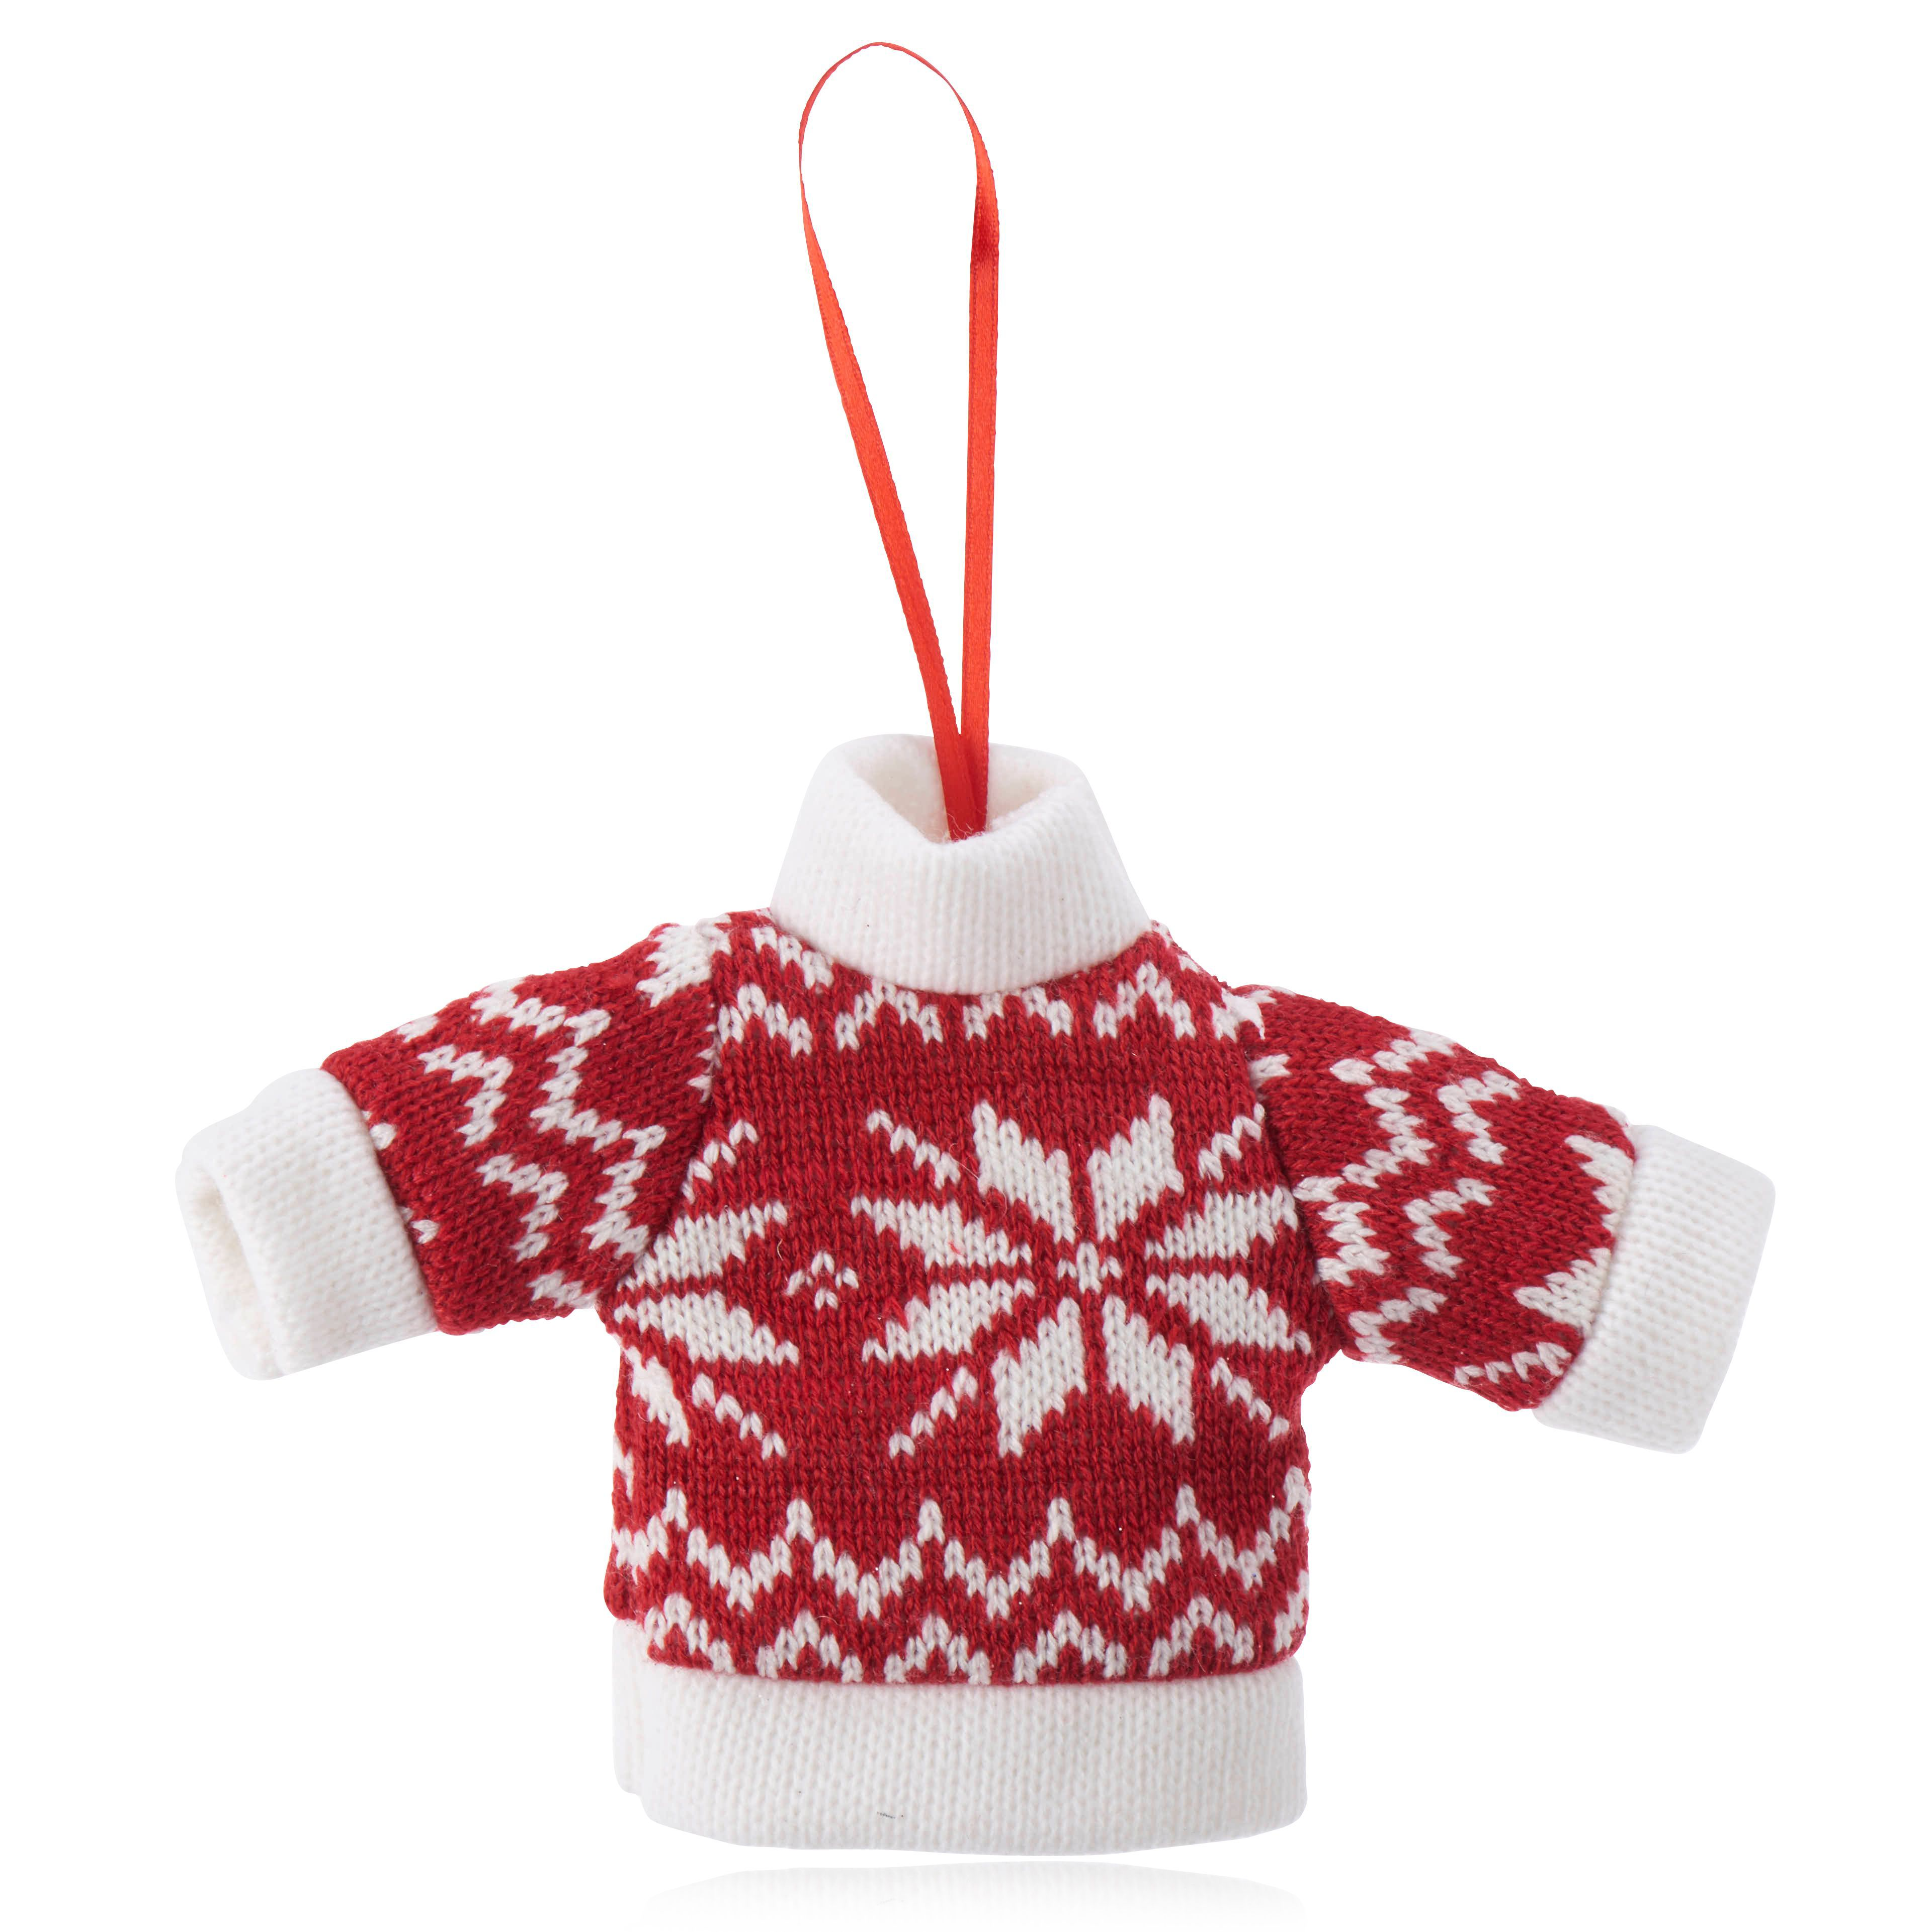 Knitted Red Skandi Style Jumper Decoration